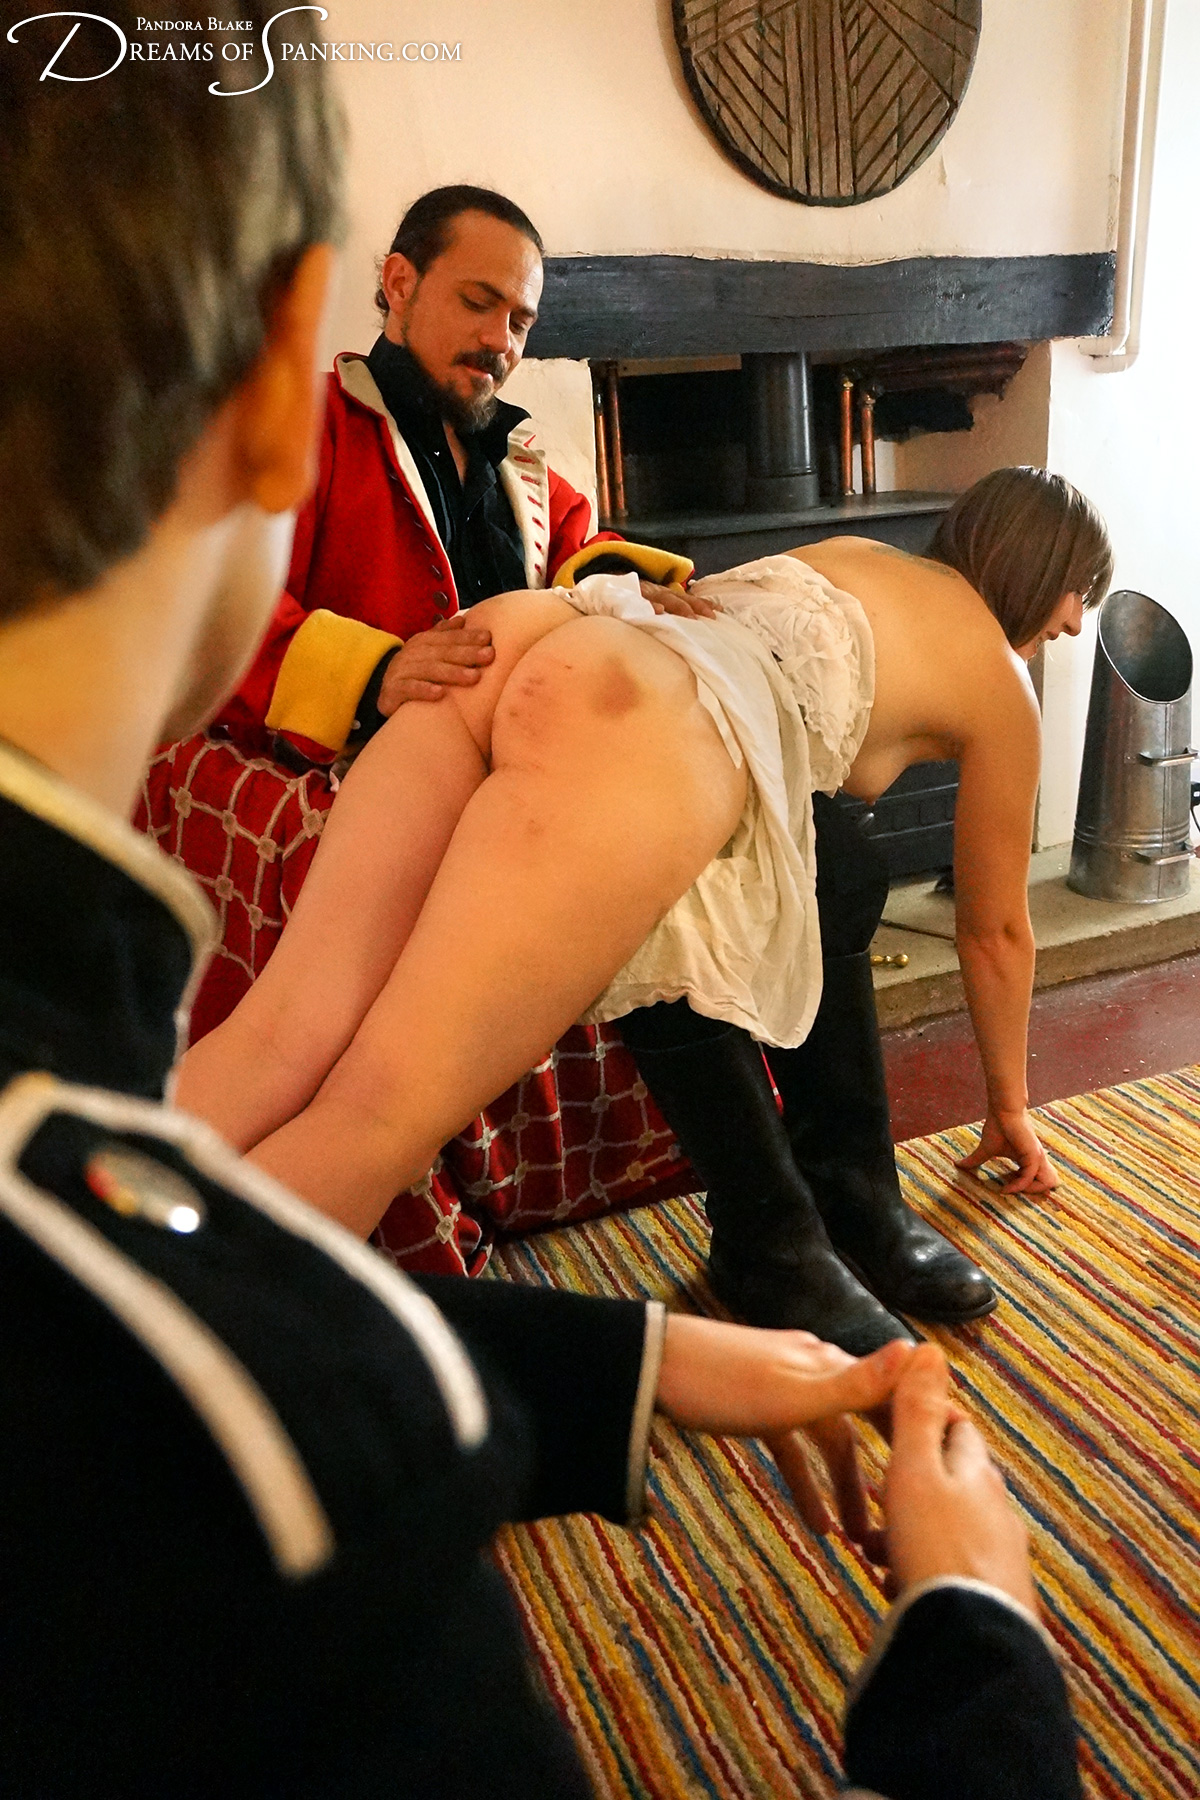 The wench Pandora is punished and pleasured at the hands of the young officer and his superior